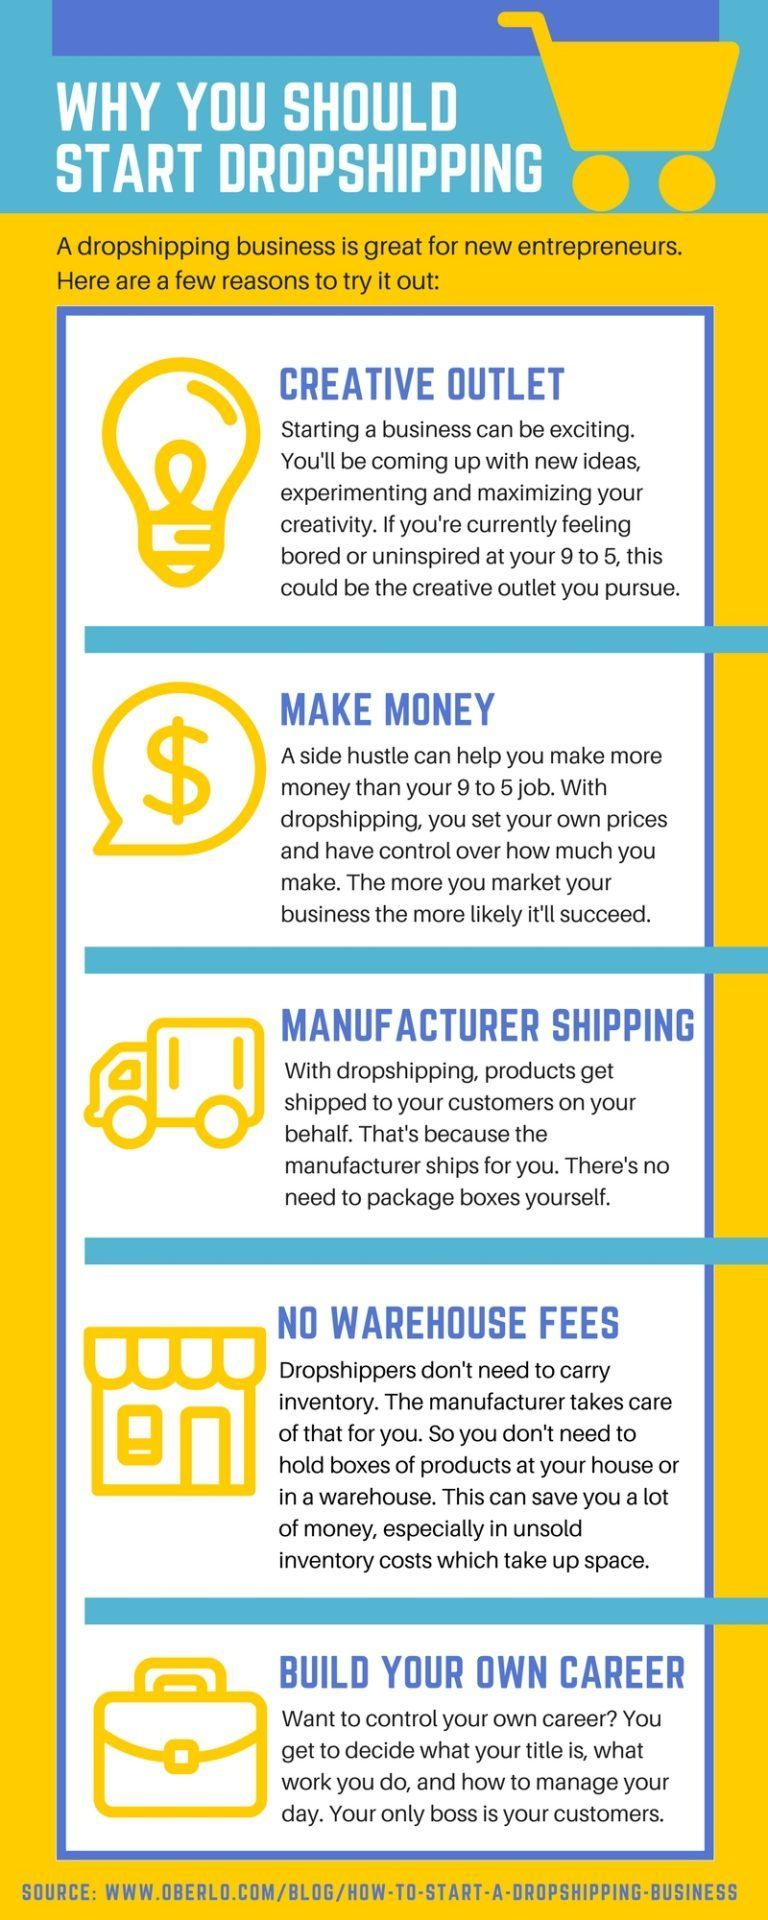 How To Start A Dropshipping Business In 2021 Oberlo Drop Shipping Business Business Tax Deductions Small Business Tax Deductions